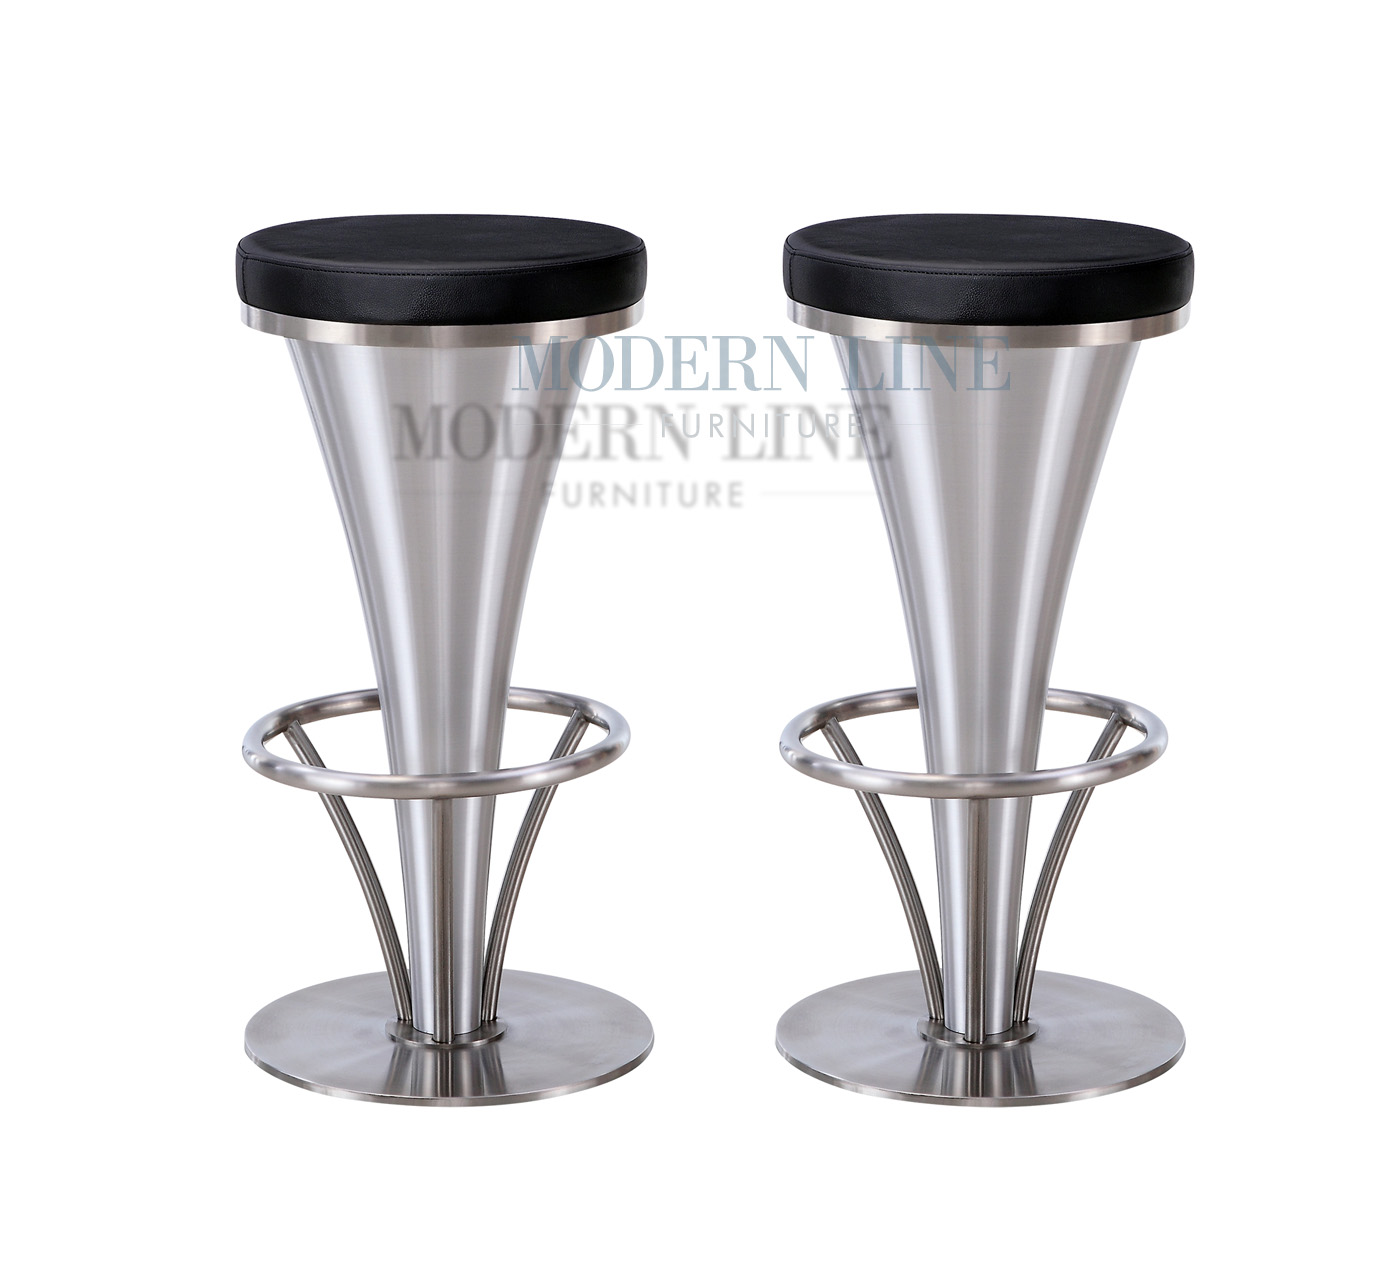 Modern Line Furniture mercial Furniture Custom Made Furniture Bar Furniture Bar Stools Bar Stool Model